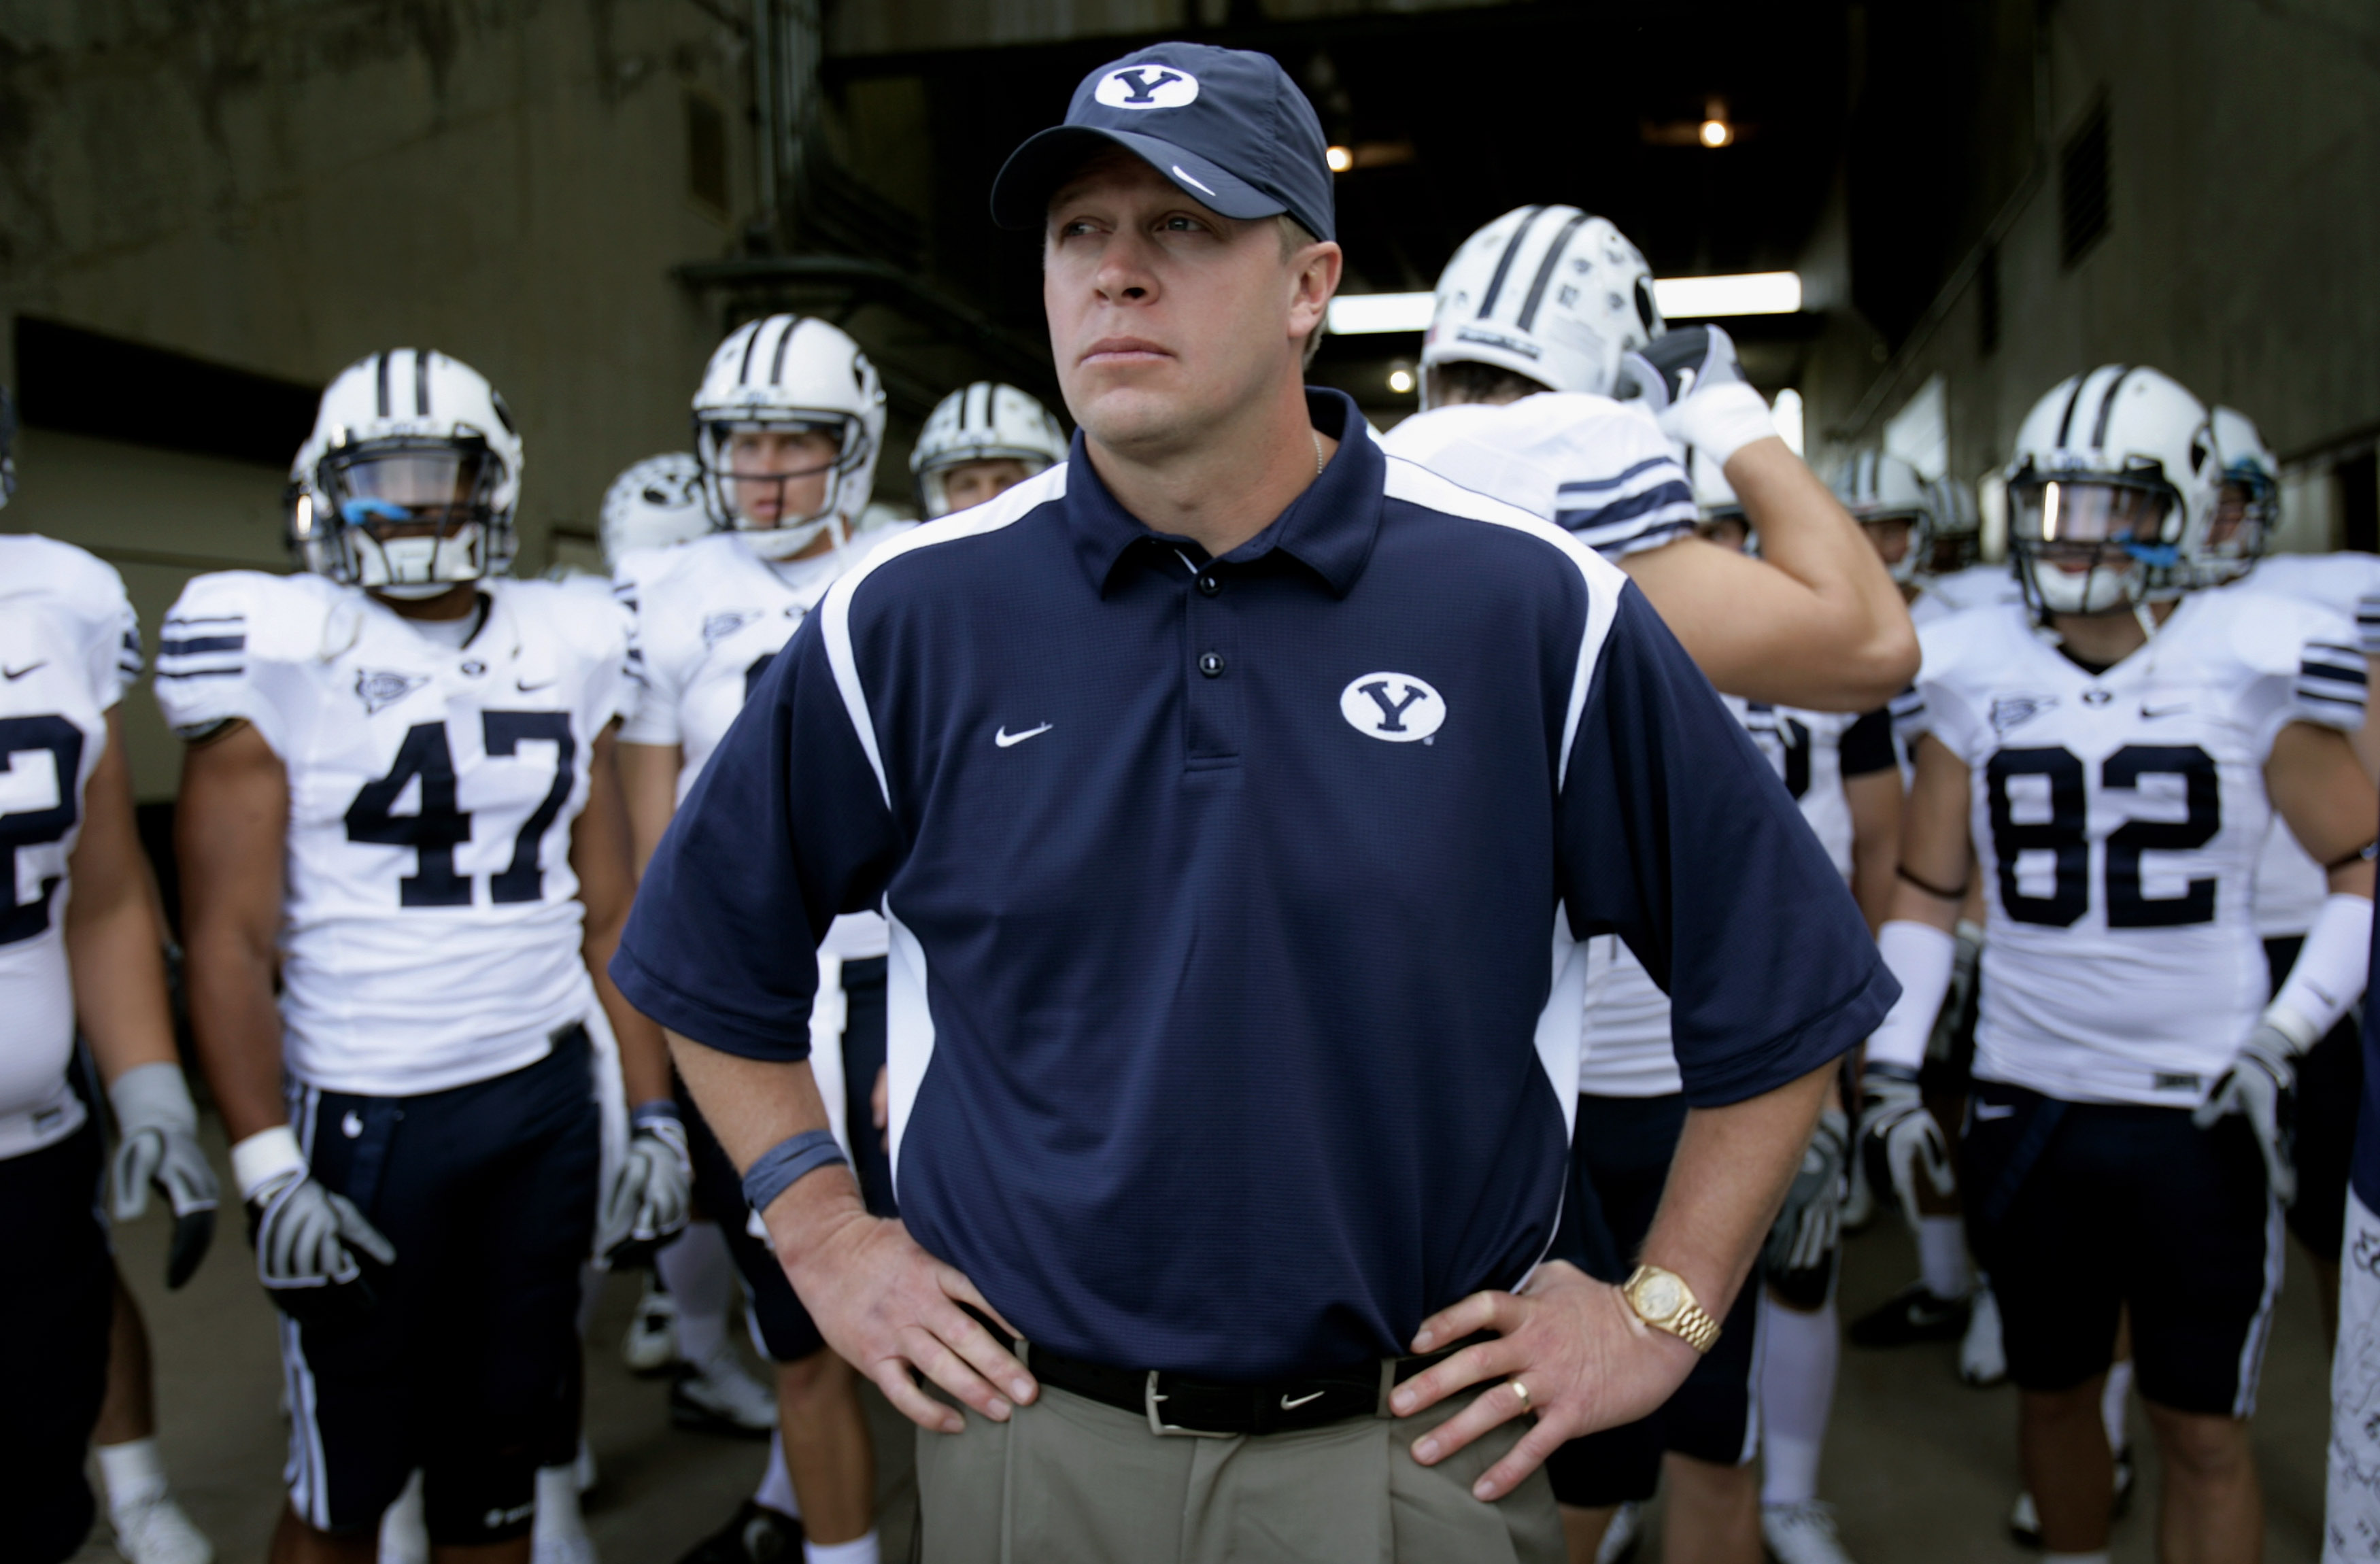 FORT COLLINS, CO - NOVEMBER 01:  Head coach Bronco Mendenhall of the Brigham Young Cougars prepares to lead his team onto the field to face the Colorado State Rams at Sonny Lubick Field at Hughes Stadium on November 1, 2008 in Fort Collins, Colorado. BYU